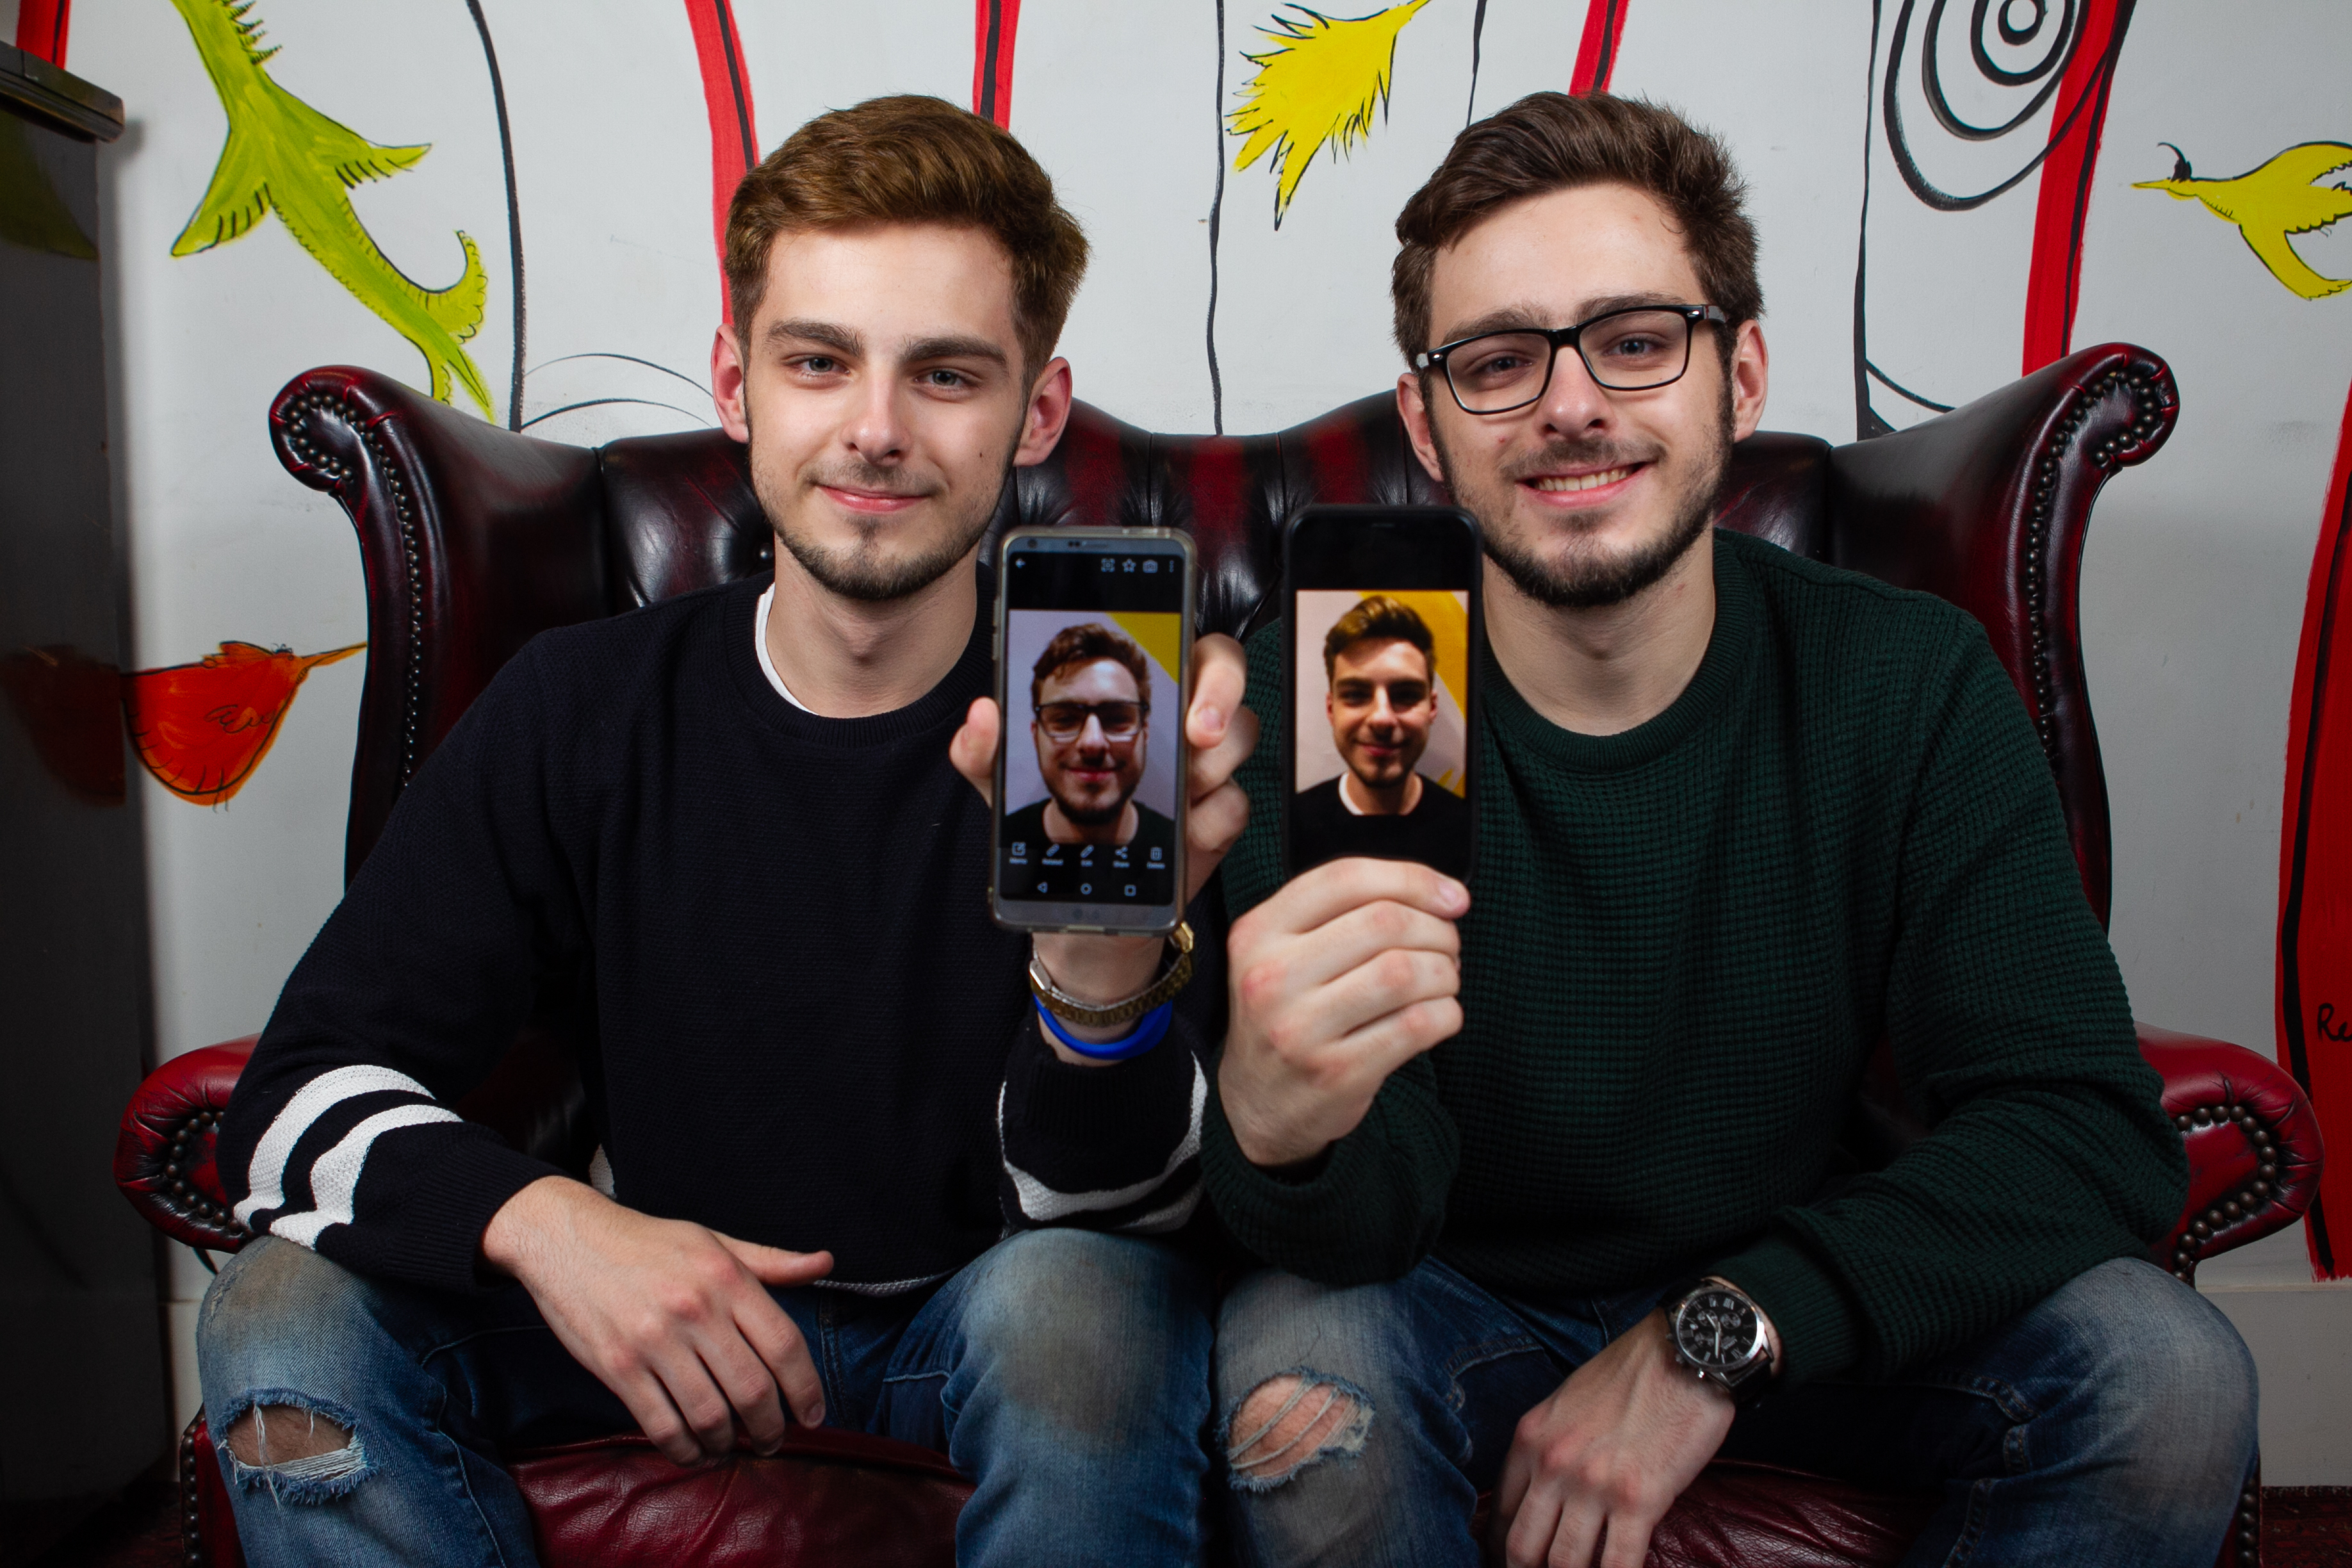 Thomas and William Johnson with their phones (Andrew Cawley / DC Thomson)